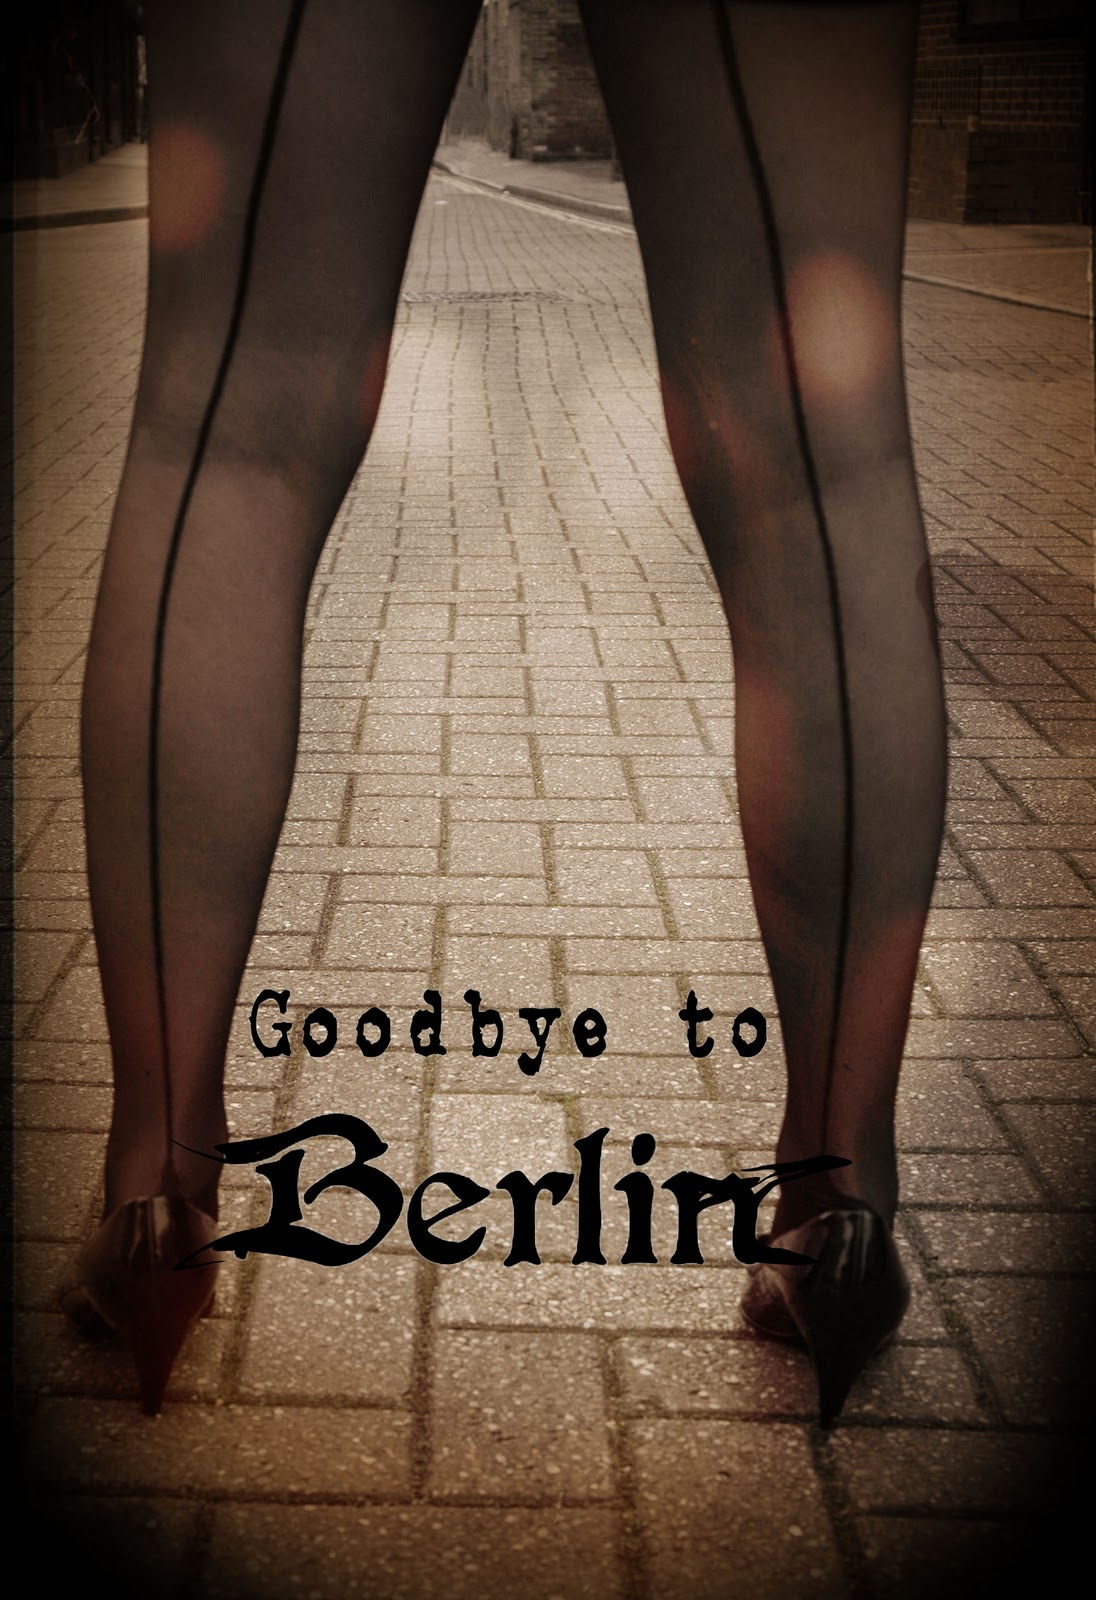 goodbye to berlin essay Saying goodbye is never easy essay  losing someone close to you is one of the most challenging life experiences - saying goodbye is never easy essay introduction saying goodbye to a loved one is never easy, to say the least.